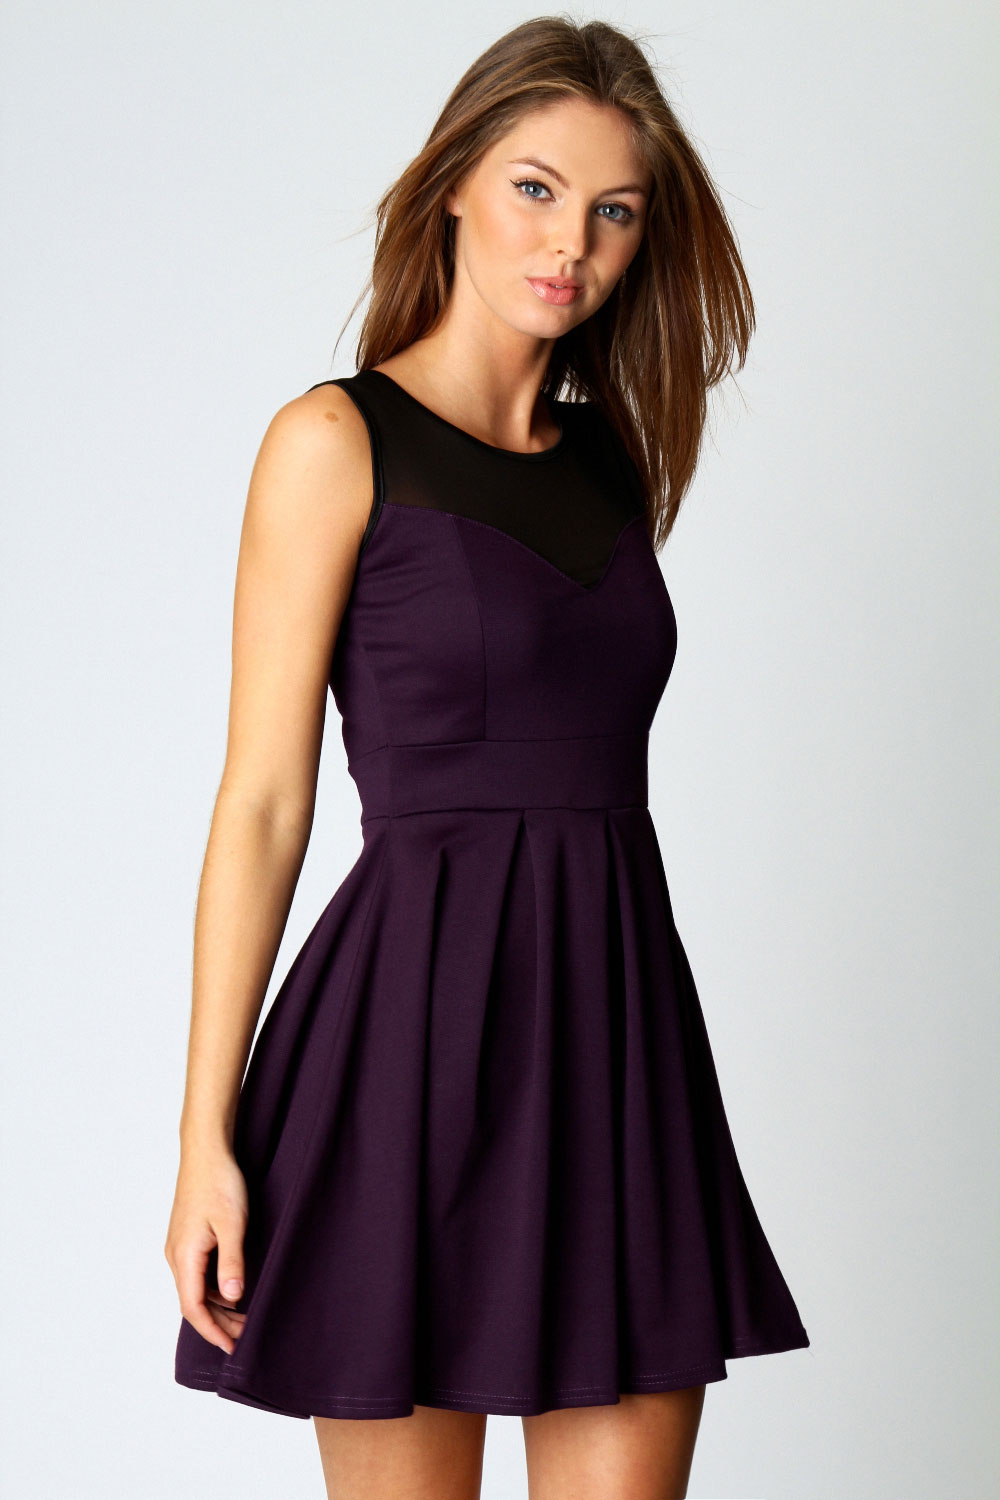 Buy the latest women's skater dresses online at low price. StyleWe offers cheap dresses in red, black, white and more for different occasions.